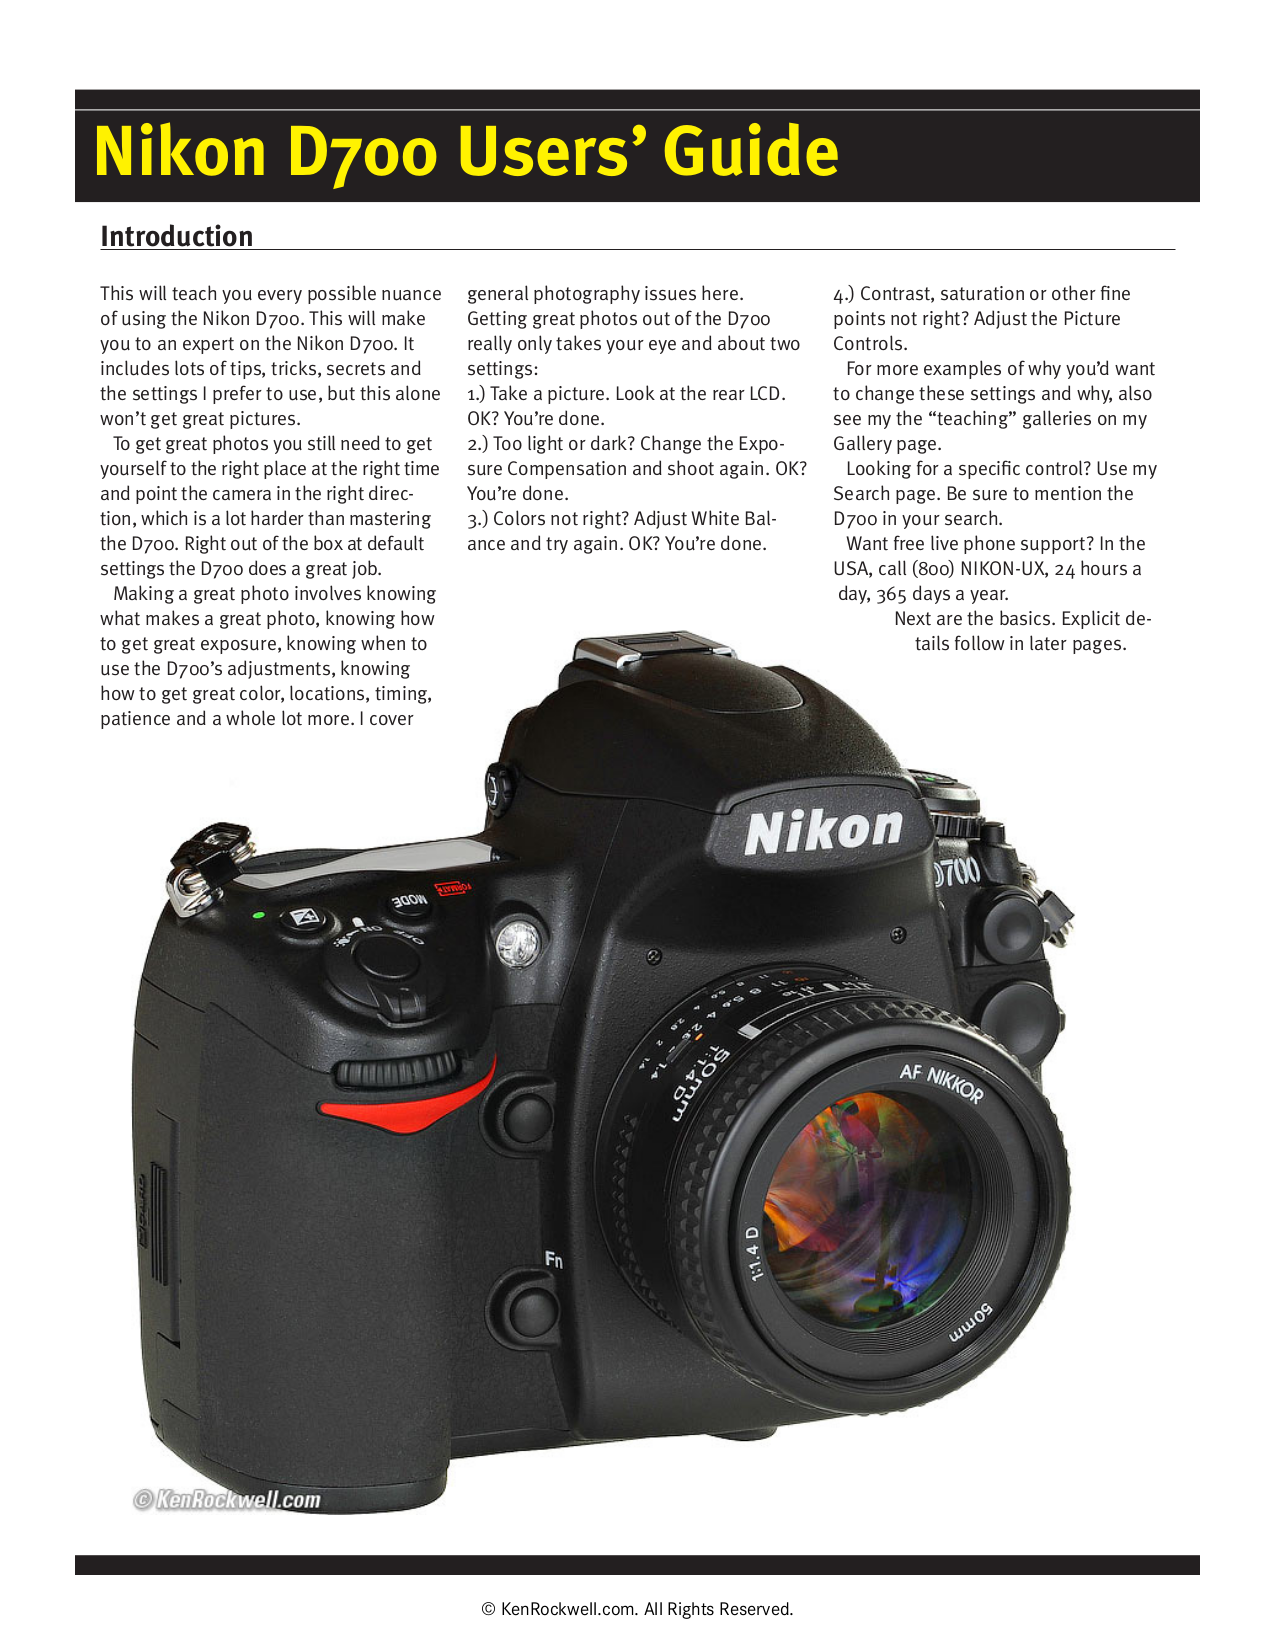 d700 user guide various owner manual guide u2022 rh justk co nikon d700 quick user guide D700 Post